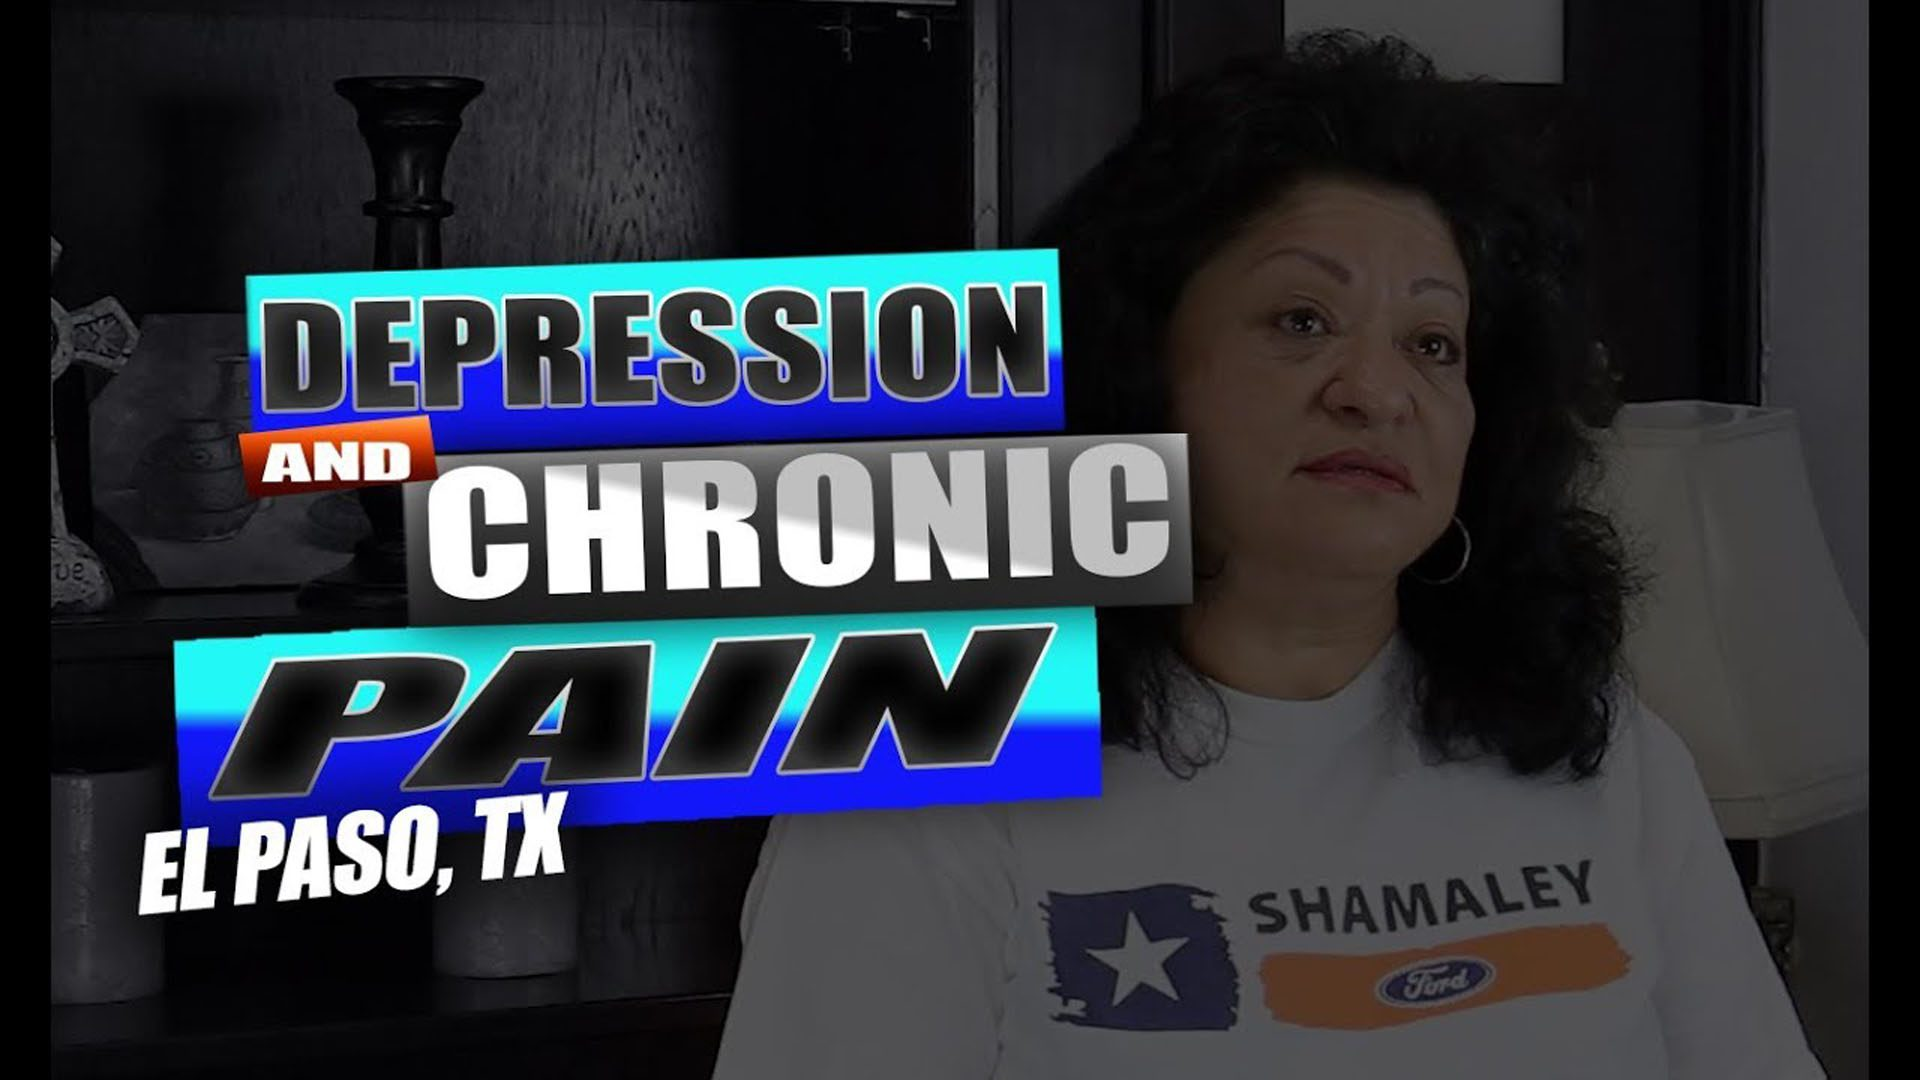 Chronic Pain and Depression | Video | El Paso, TX.